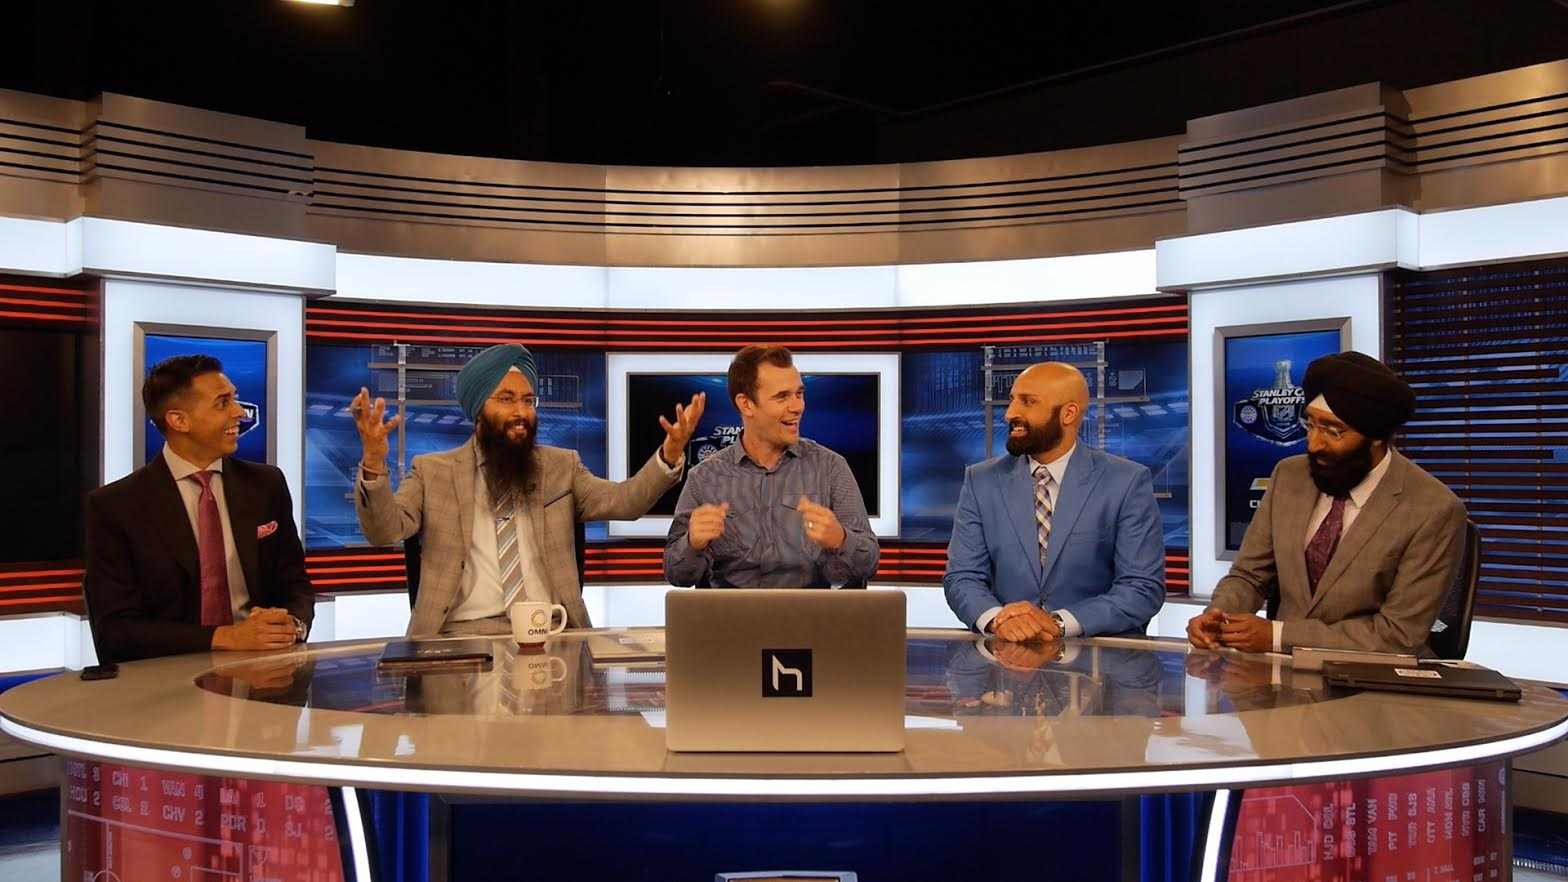 'Energy and intensity': Hockey Night Punjabi spicing up broadcasts (VIDEO)